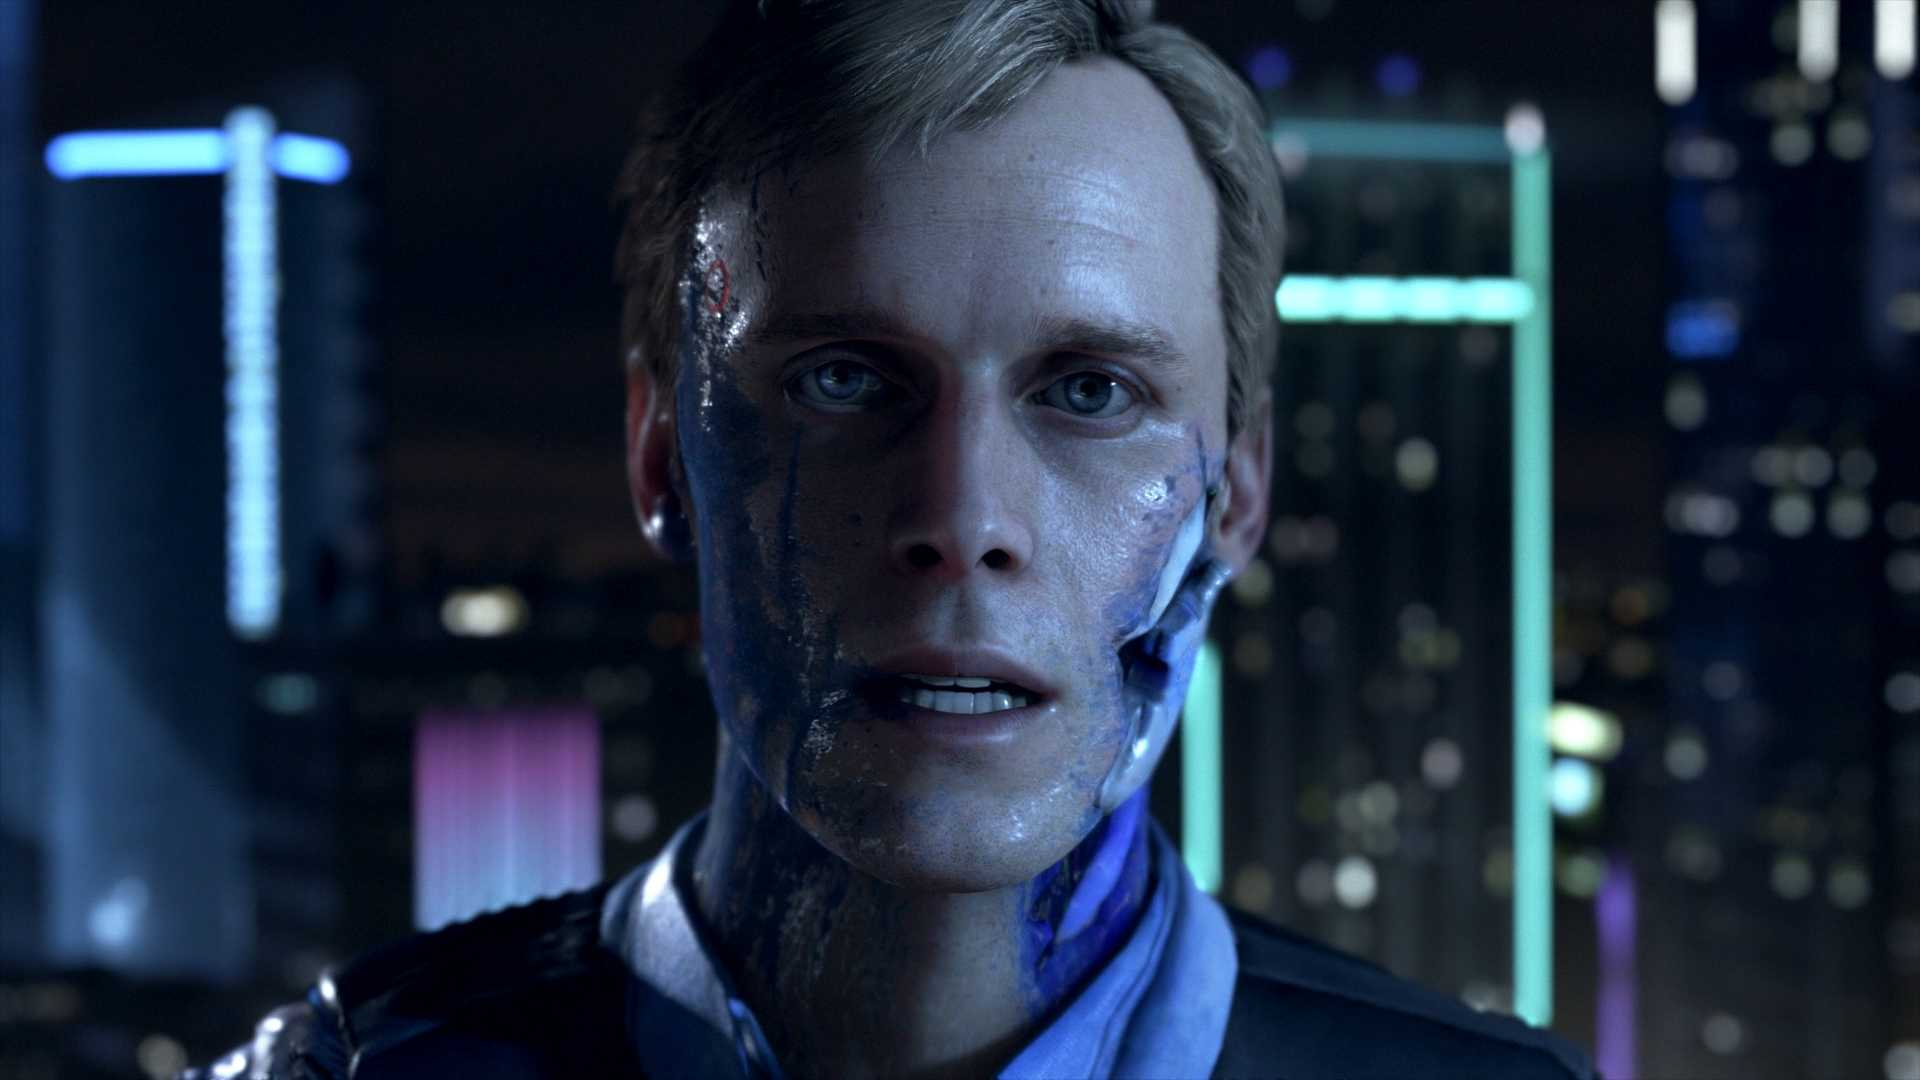 Detroit: Become Human Review - More Human Than Human